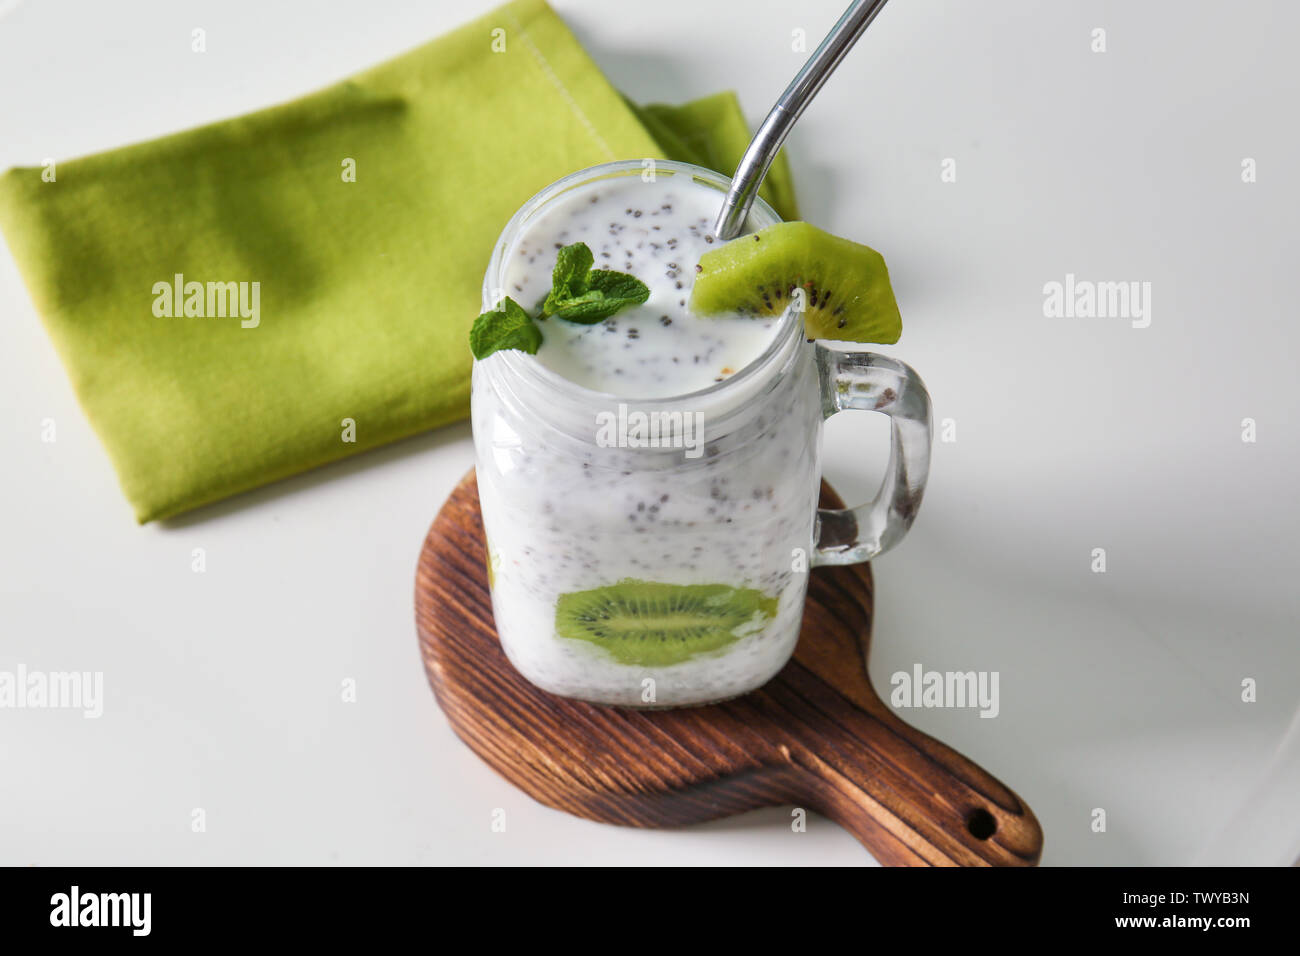 Mason jar of tasty chia cocktail on table - Stock Image